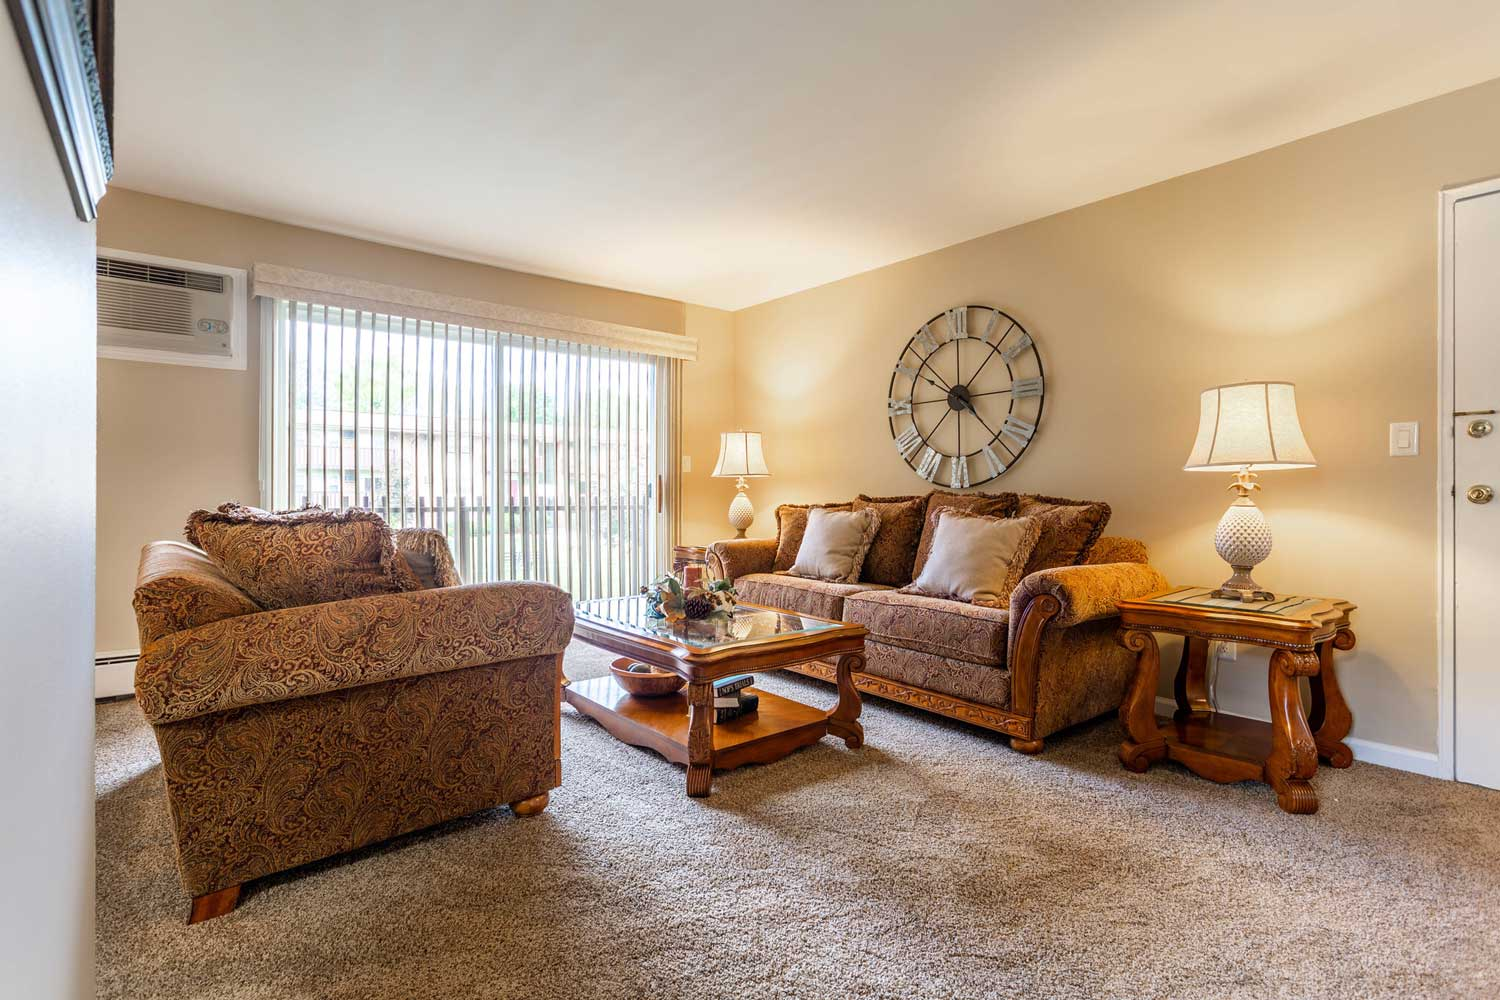 Spacious Living Area at Mountainview Gardens Apartments in Fishkill, NY